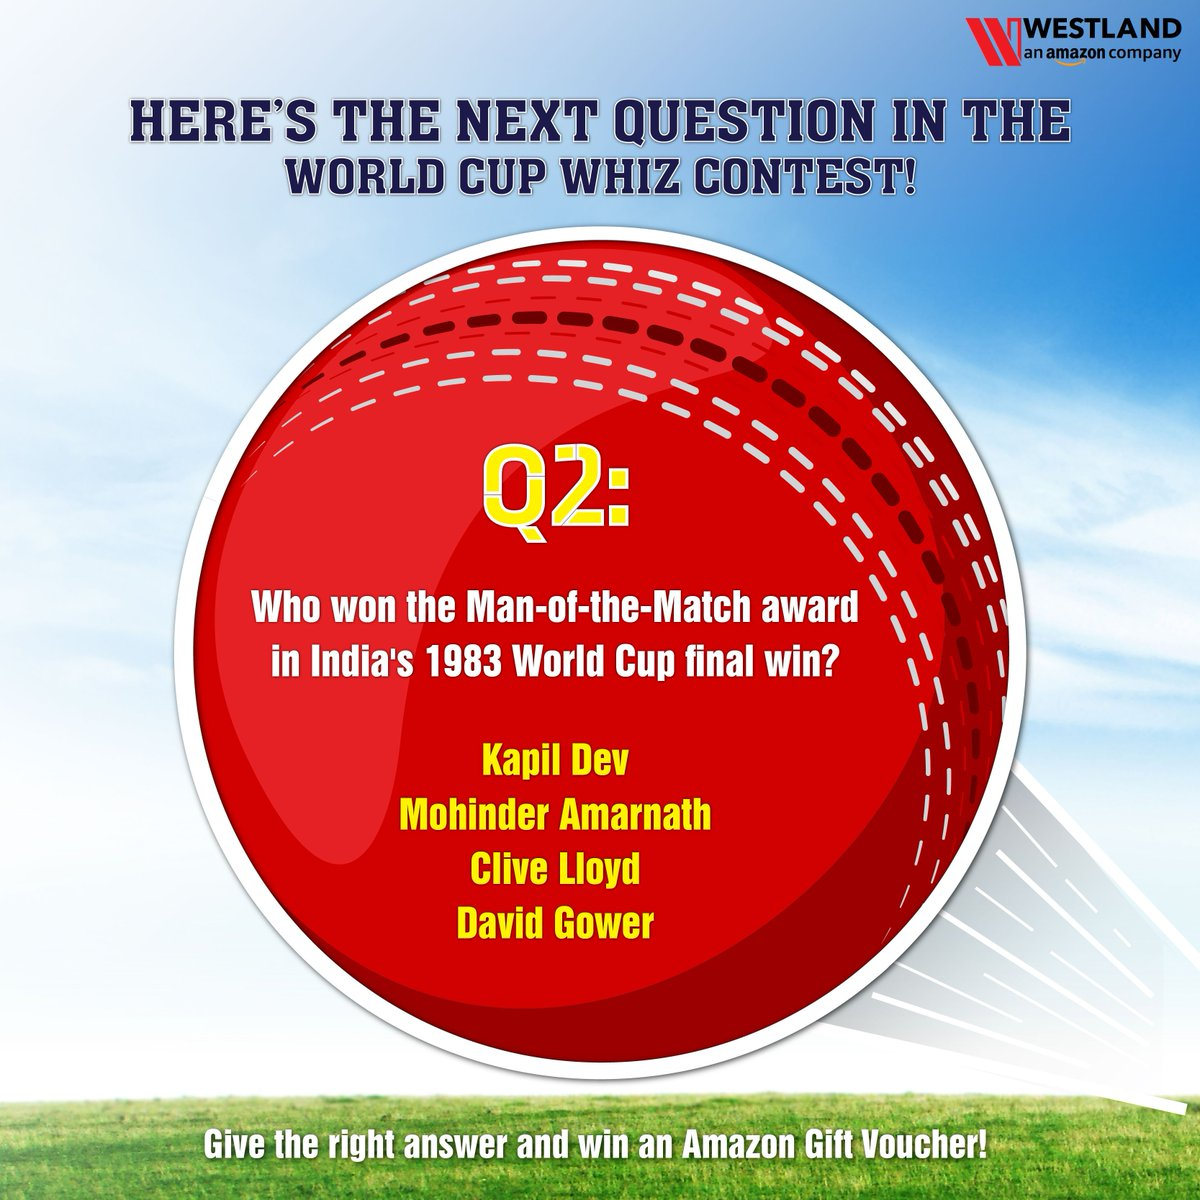 We're back with the next question of the World Cup Whiz contest! Leave your answer in the comments with the hashtag #WorldCupWhiz and you could be among 3 lucky winners to win an Amazon gift voucher! Participate now! #Worldcup19 #ICCWC2019